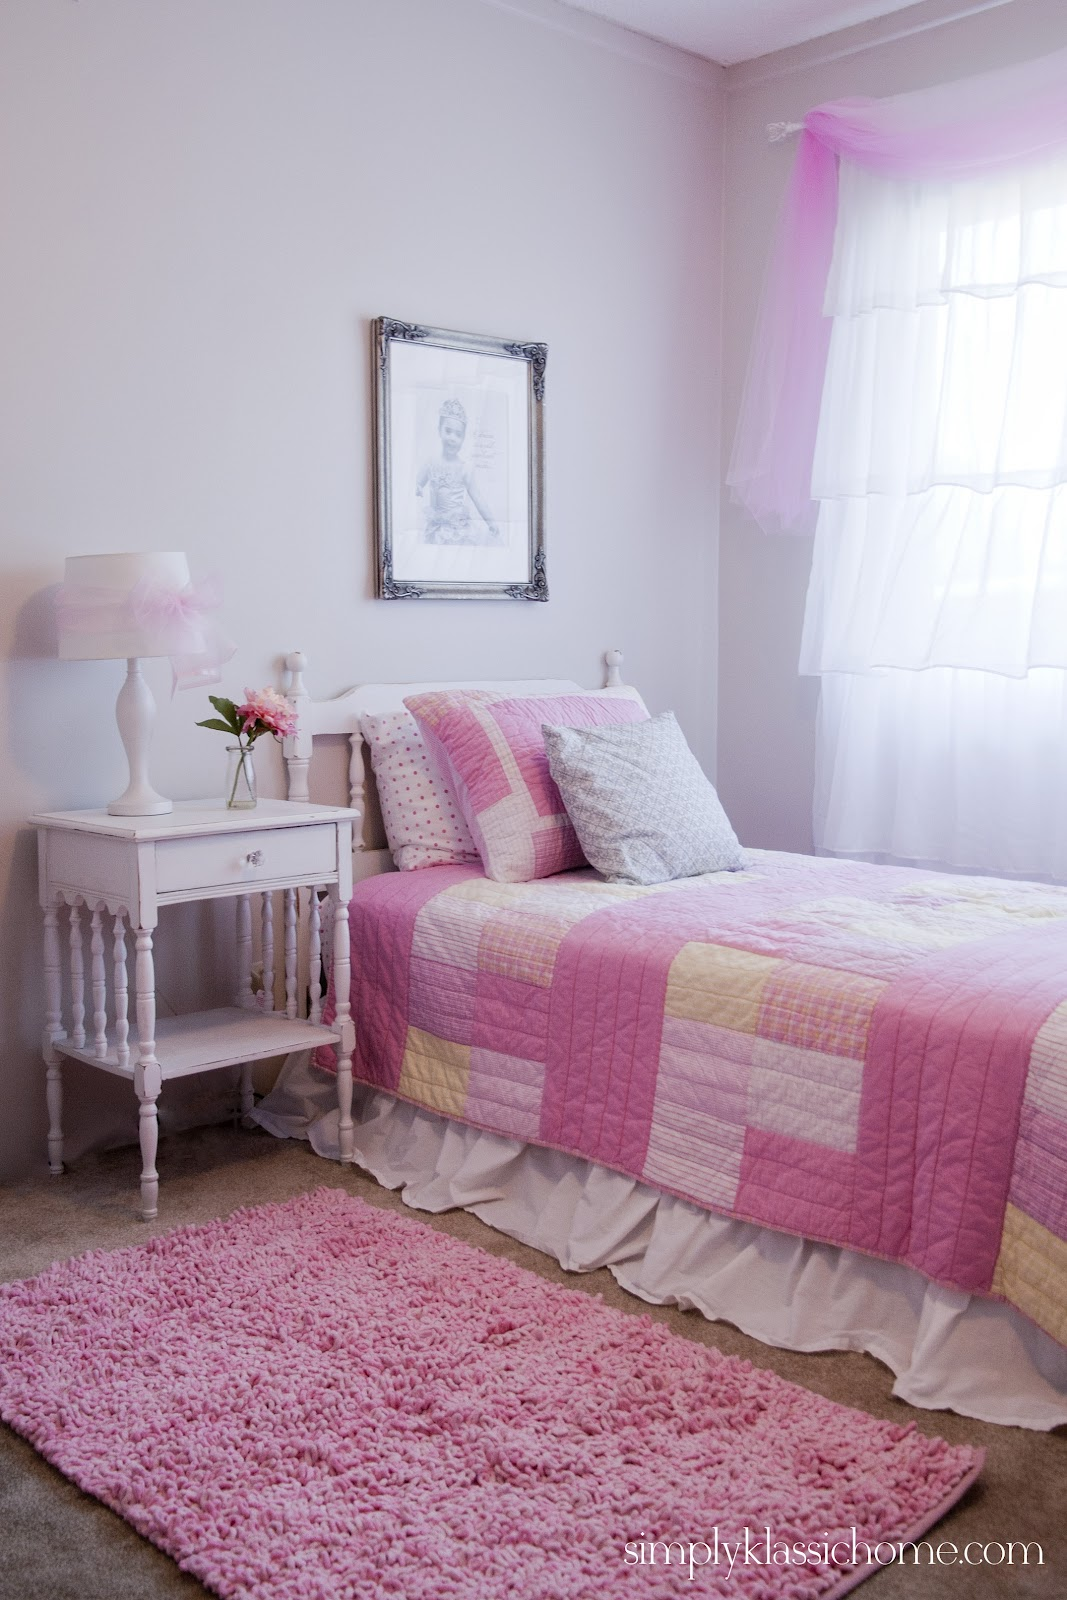 Little Girlu0027s Princess Room Makeover Reveal